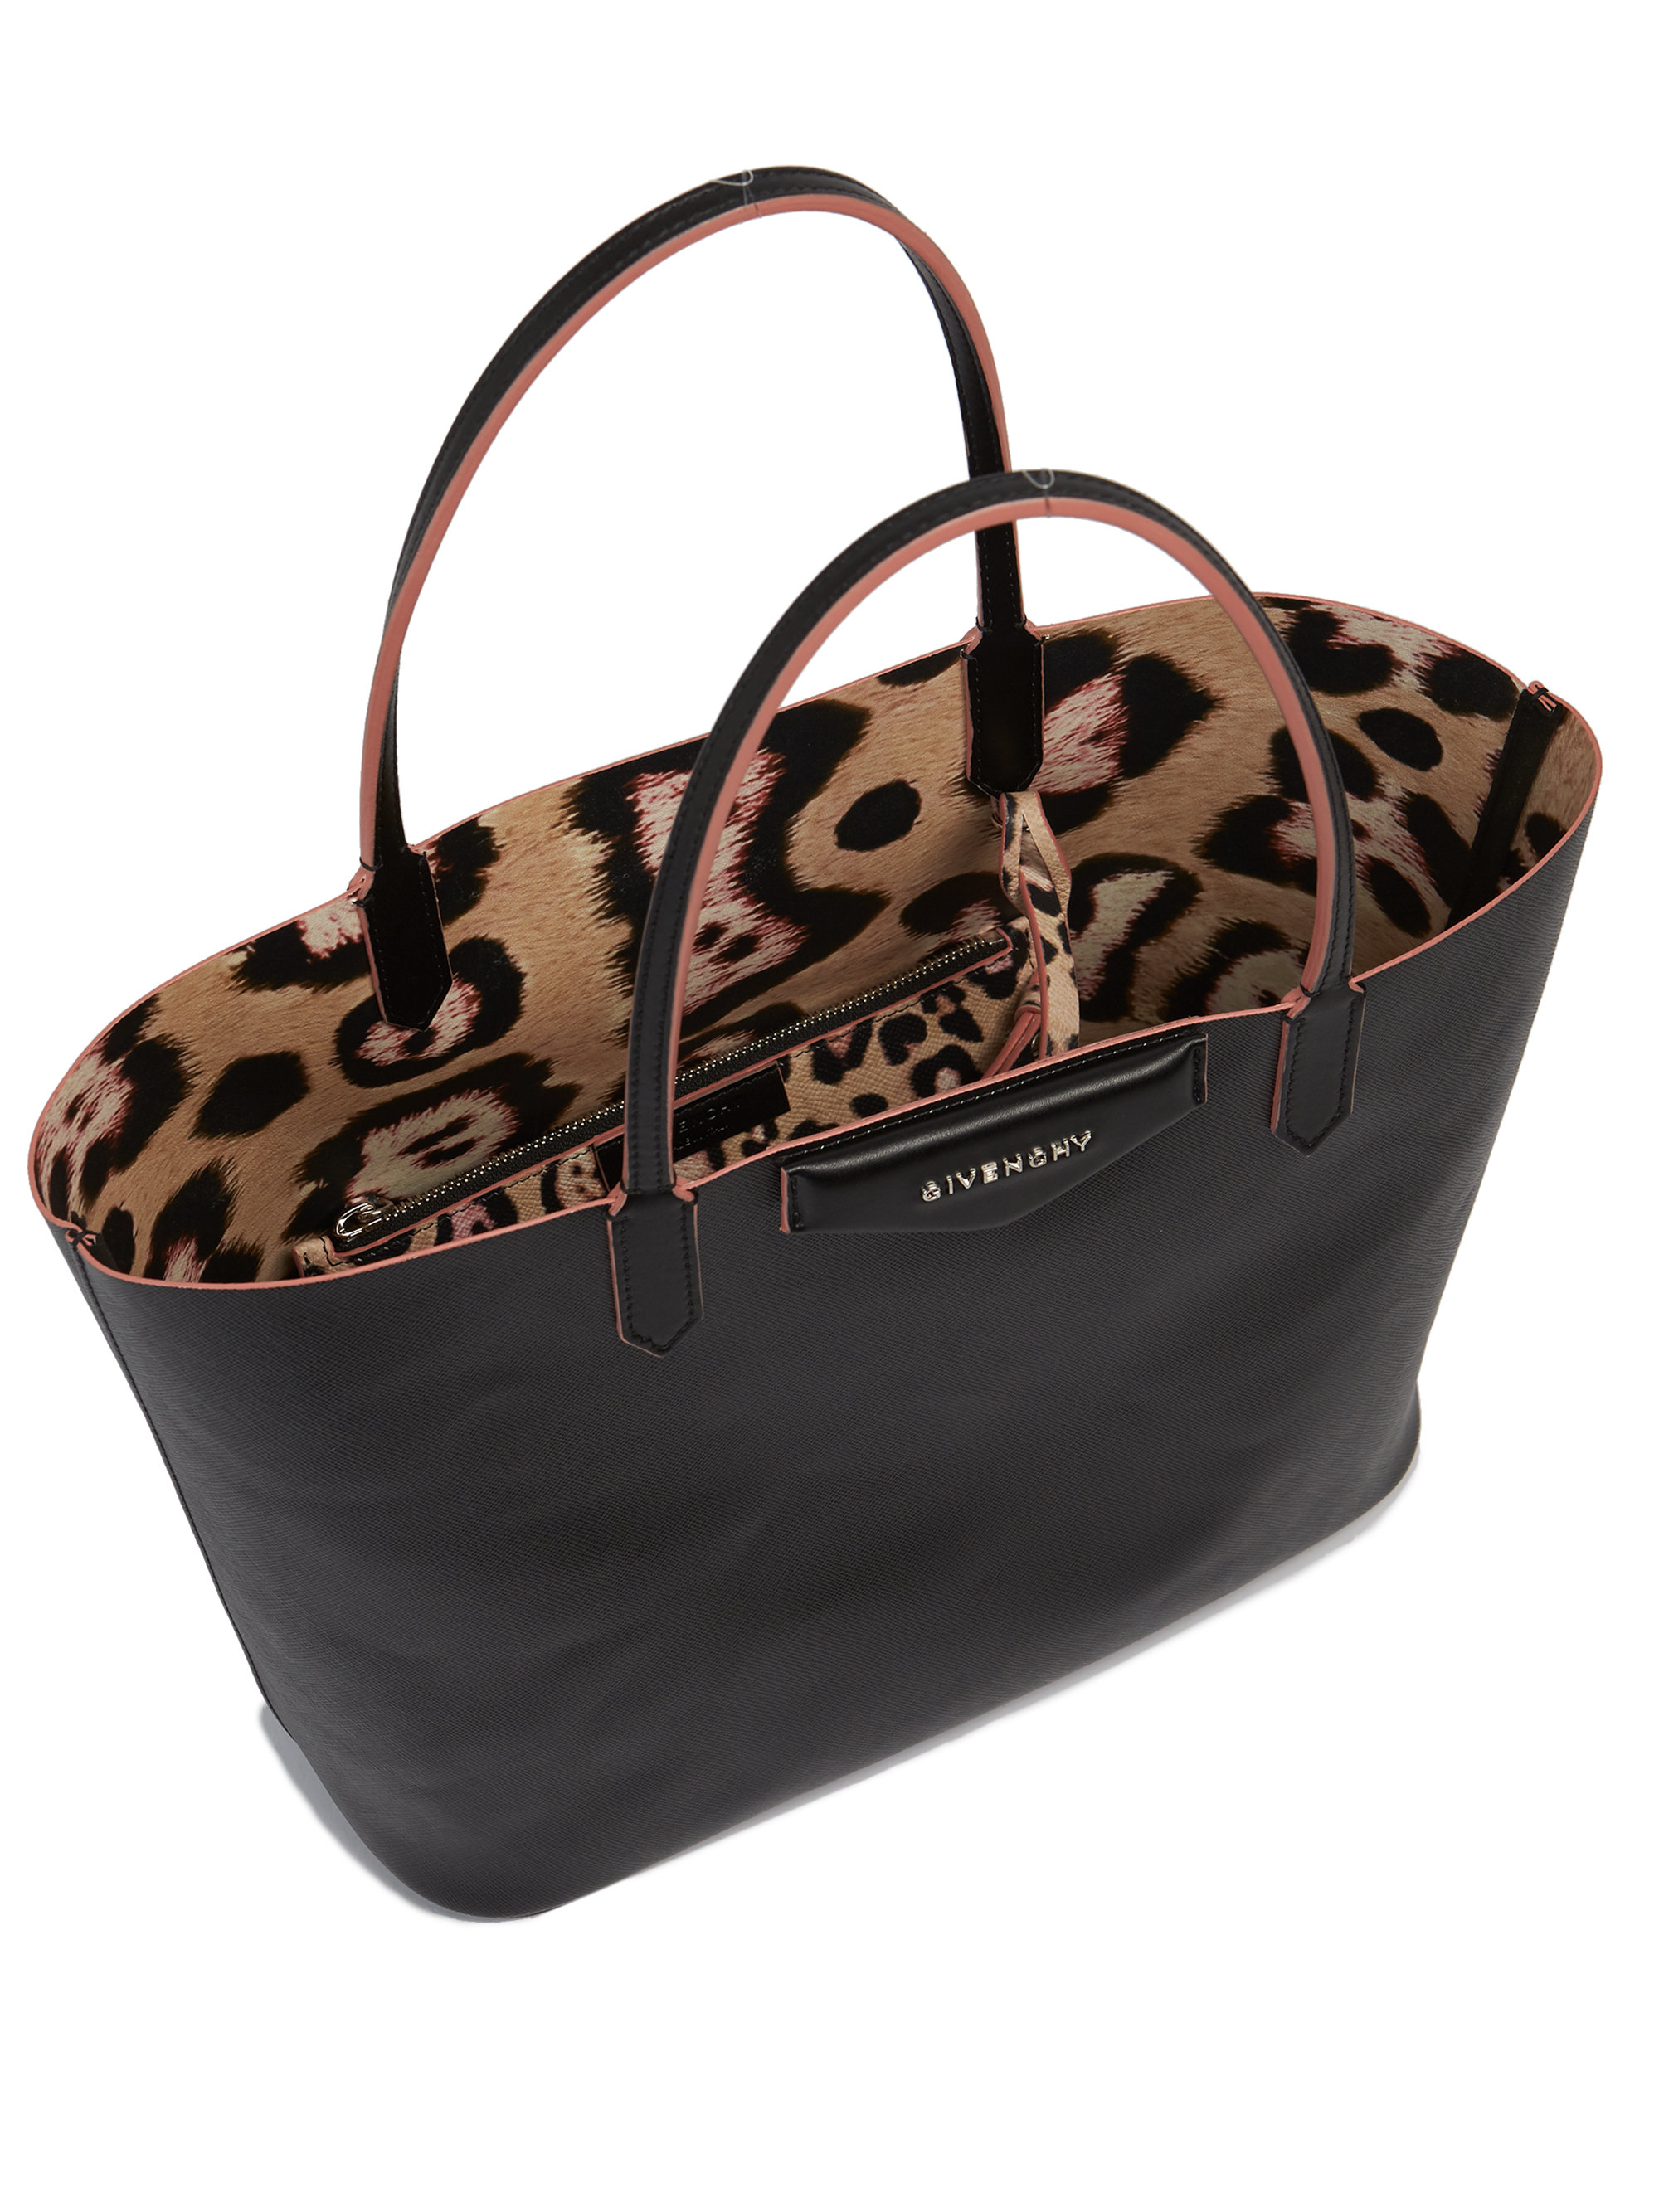 b823a23c957c Lyst - Givenchy Antigona Small Coated Canvas Tote in Black